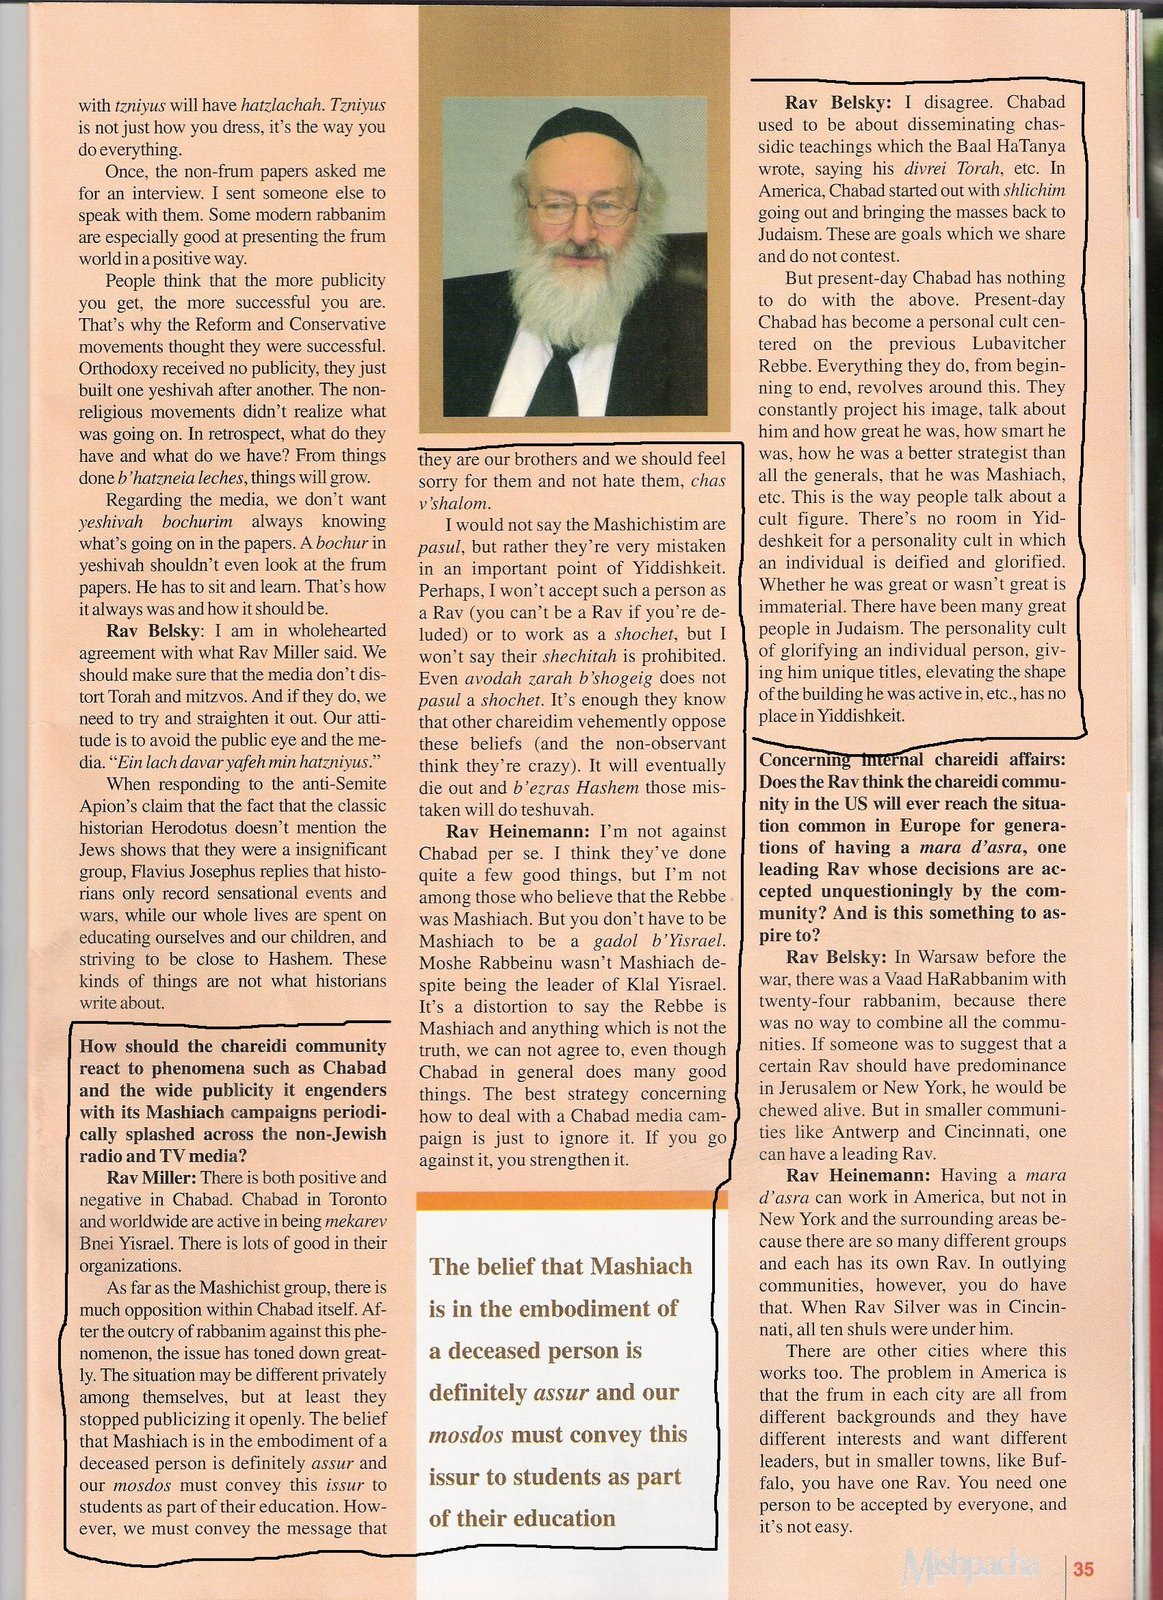 Is Chabad A Personality Cult?